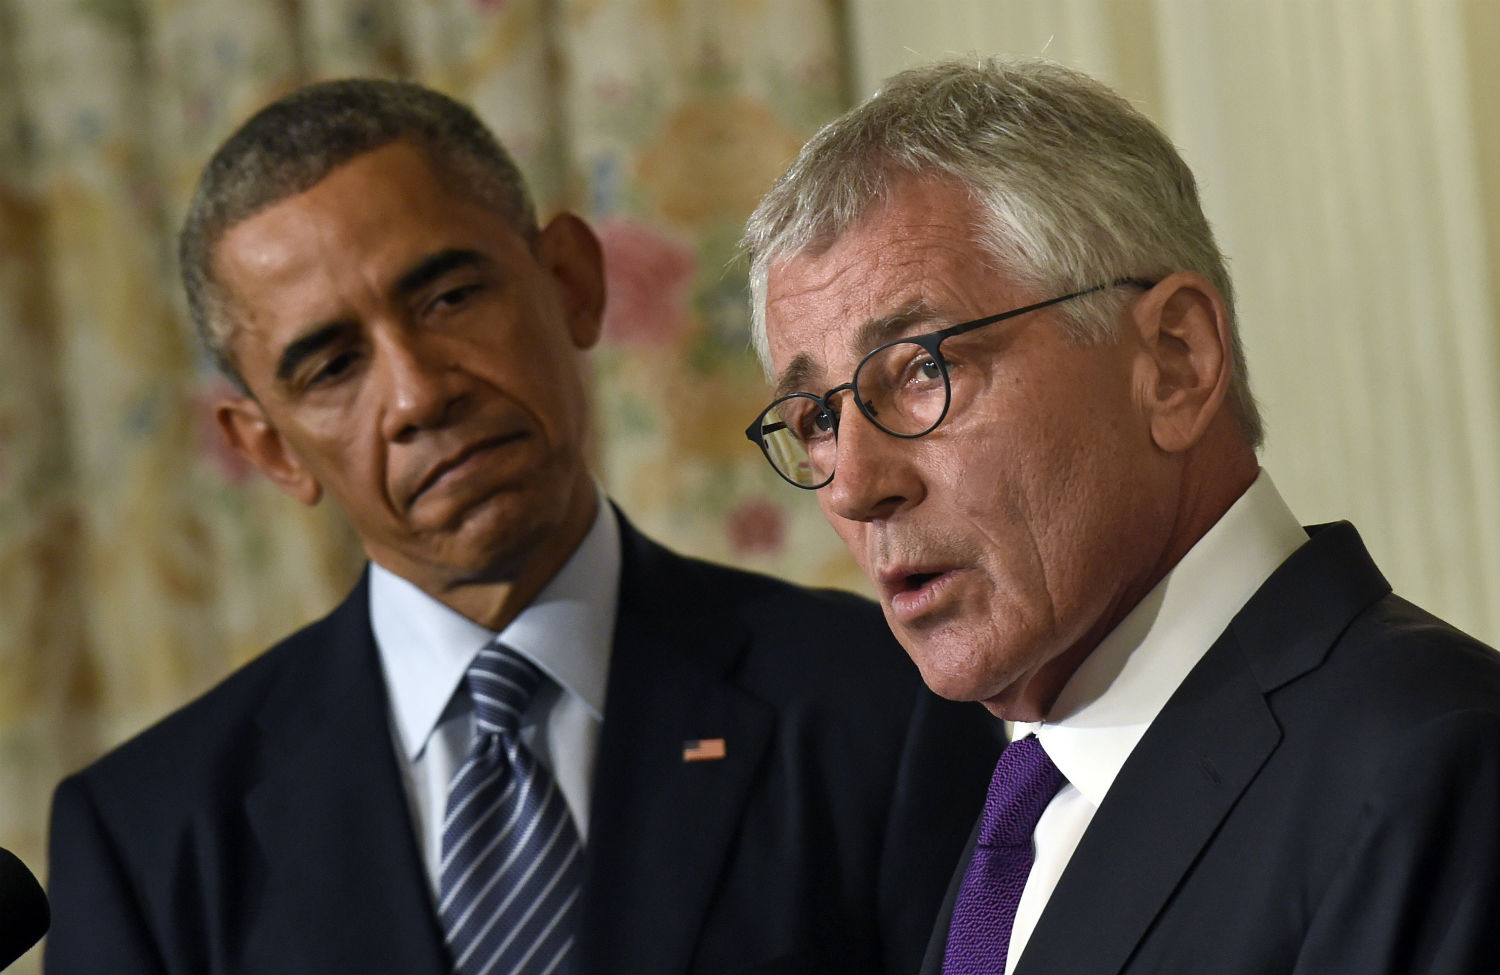 President-Obama-and-Chuck-Hagel